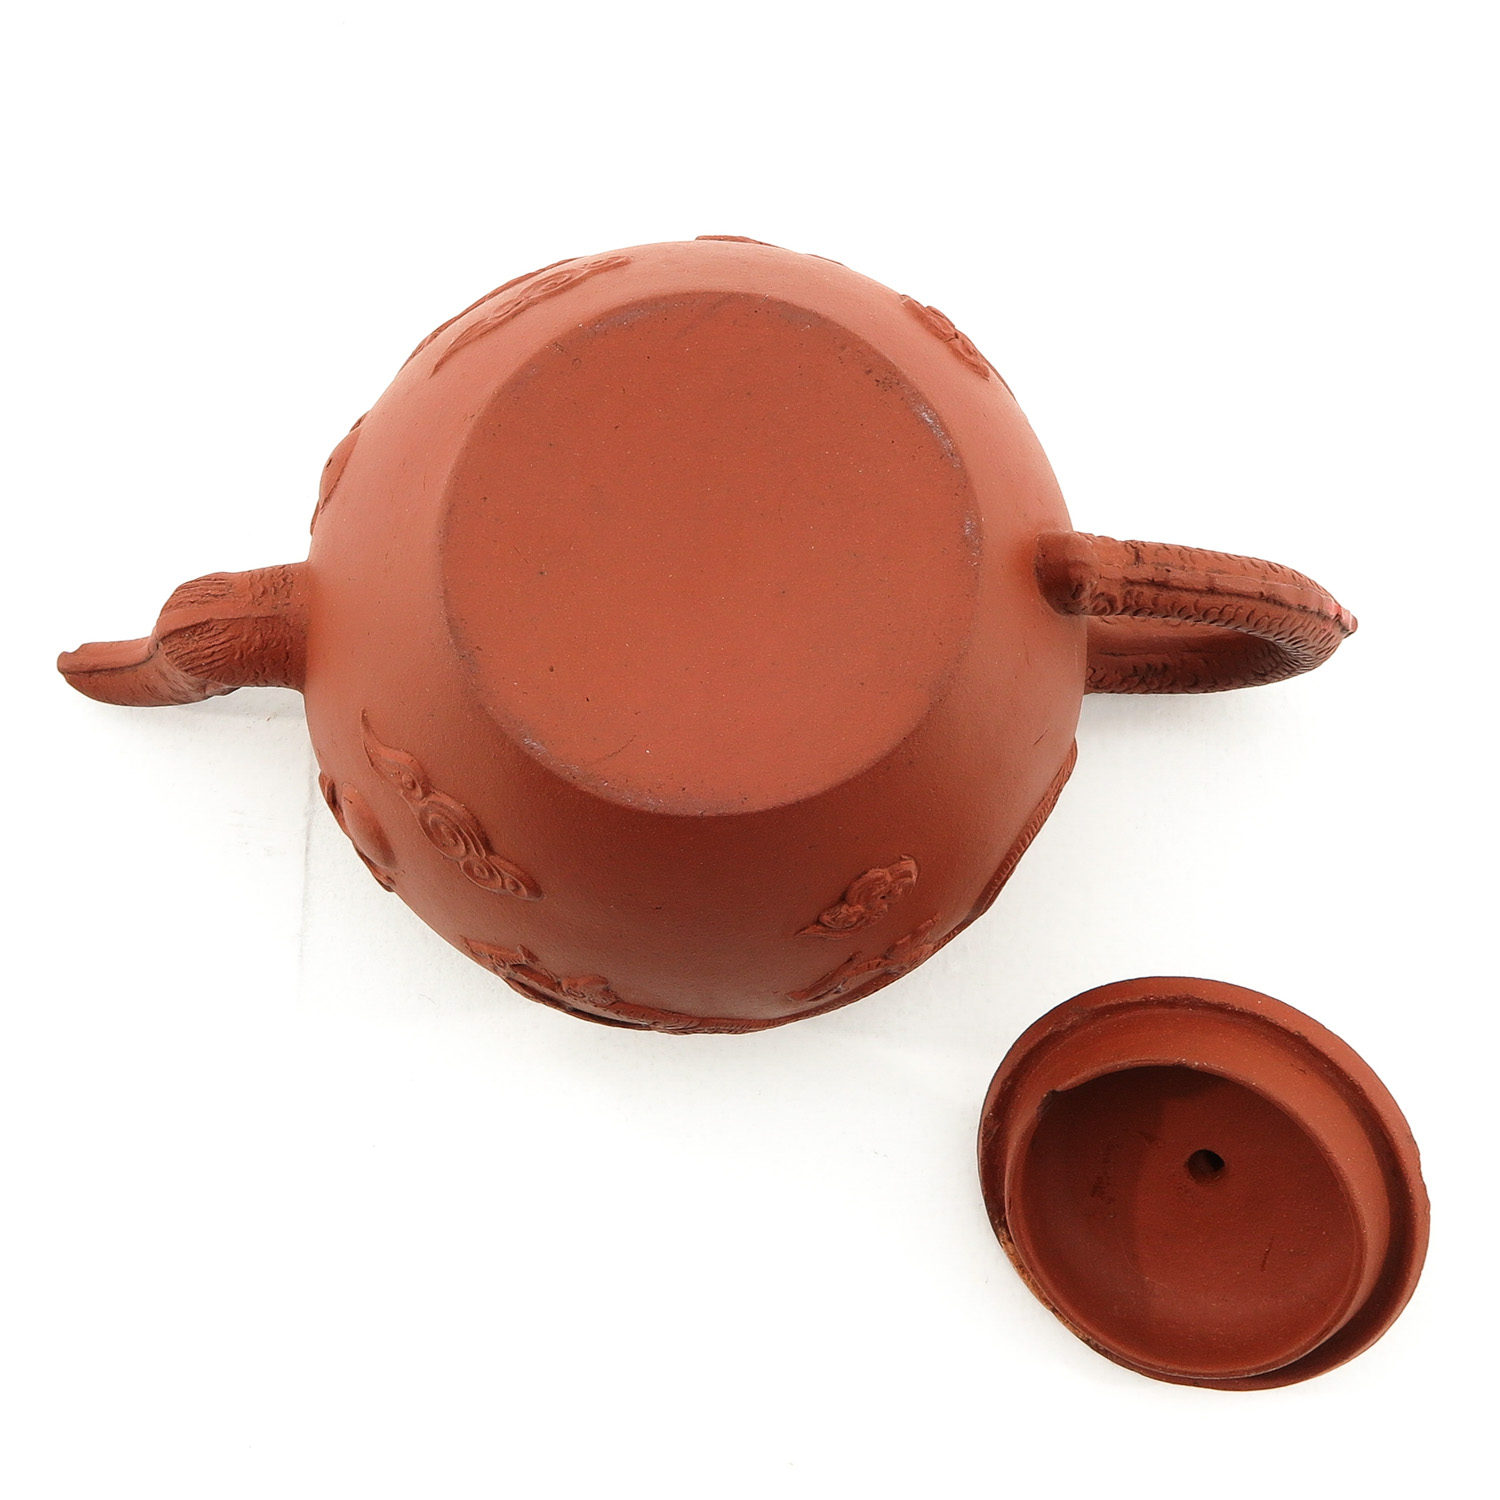 A Yixing Teapot - Image 6 of 9